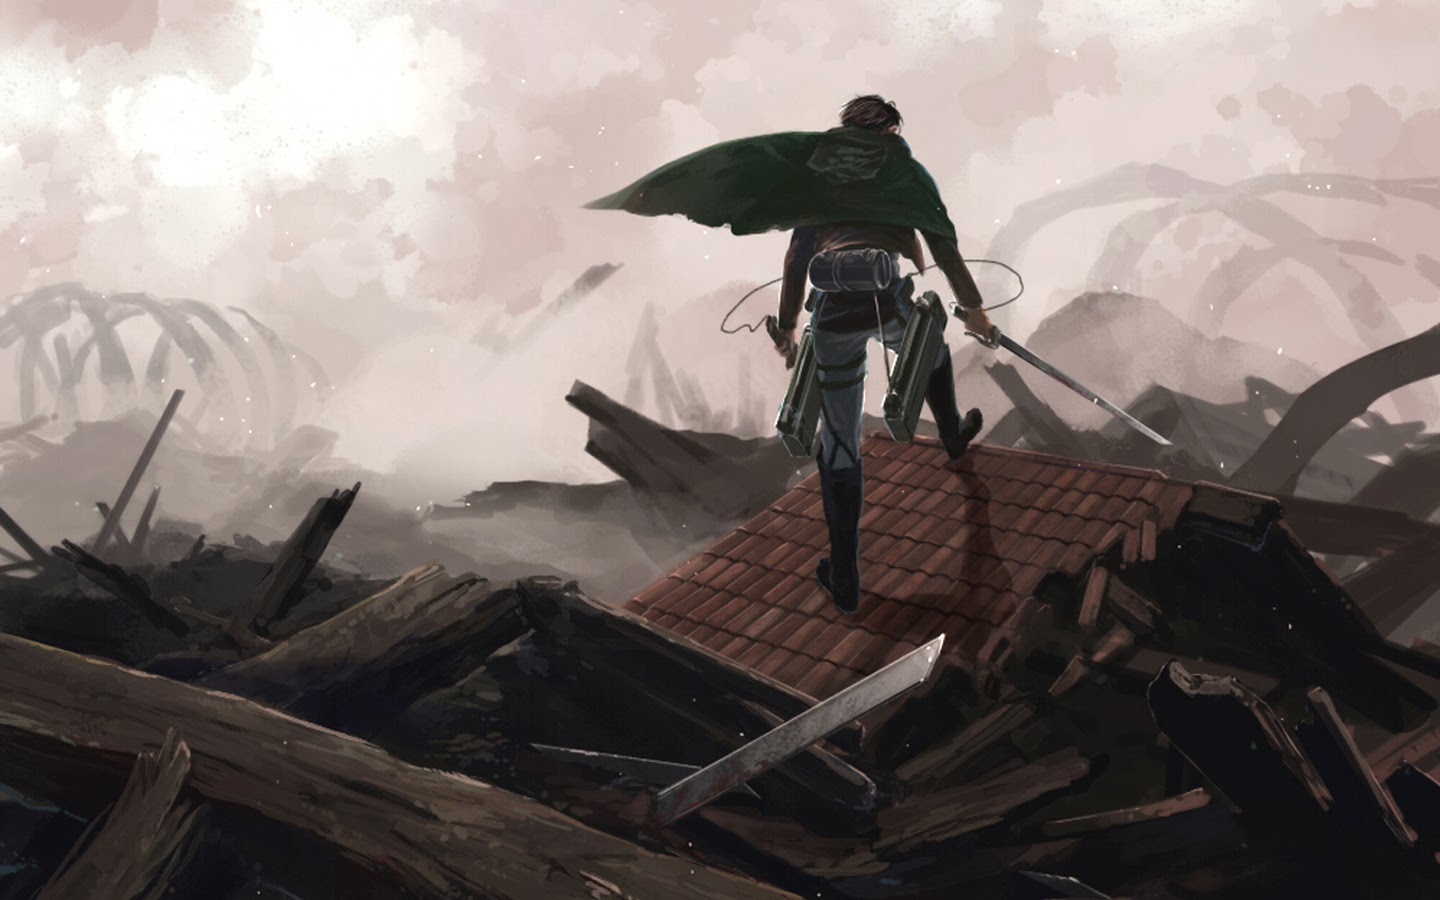 levi attack on titan shingeki no kyojin anime hd wallpaper 1440x900 6g 1440x900